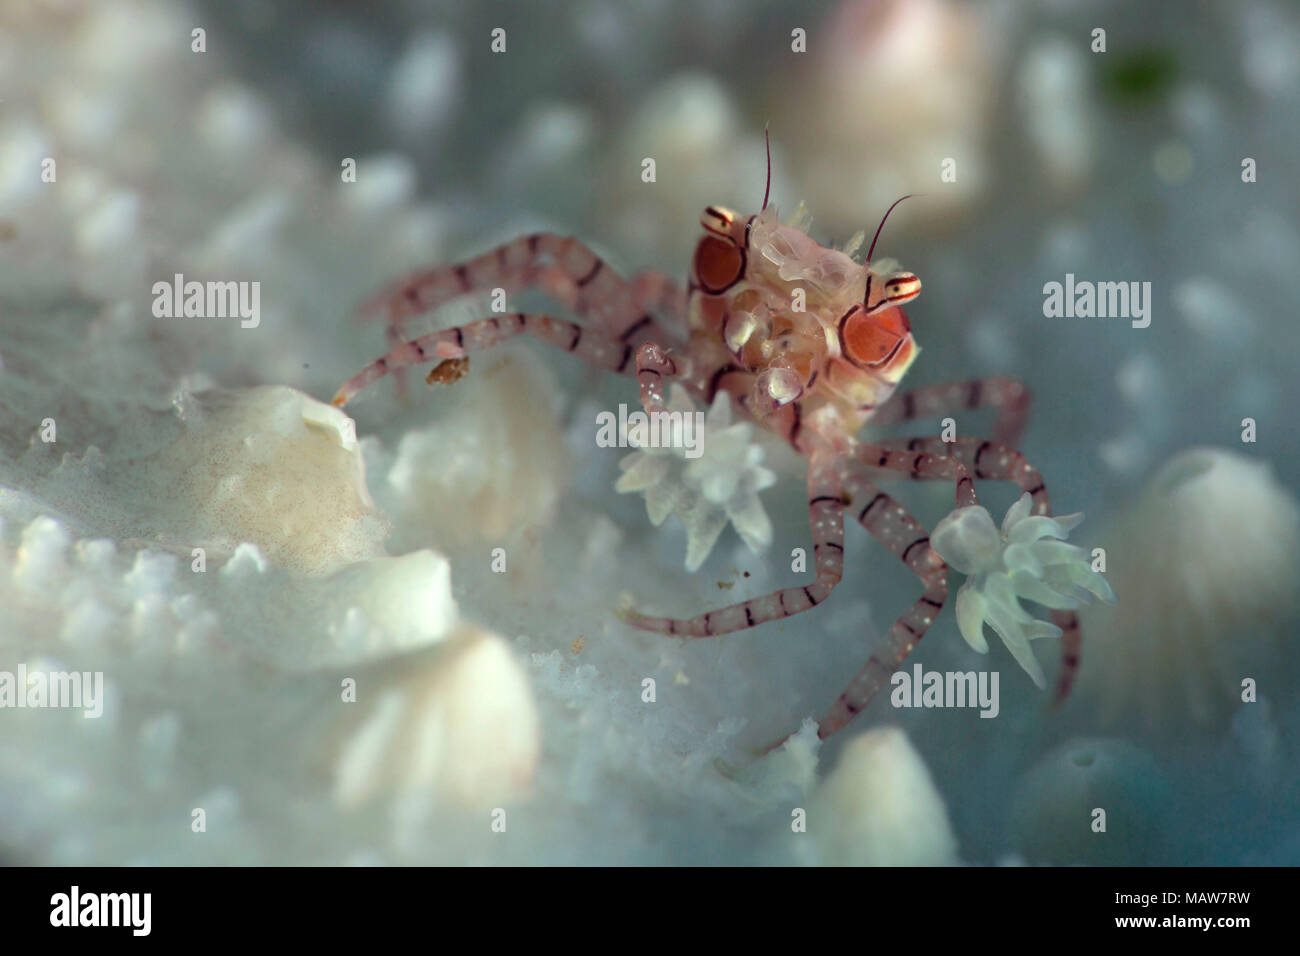 Pom-pom craborboxer crab (Lybia tesselata). Picture was taken in the Banda sea, Ambon, West Papua, Indonesia - Stock Image